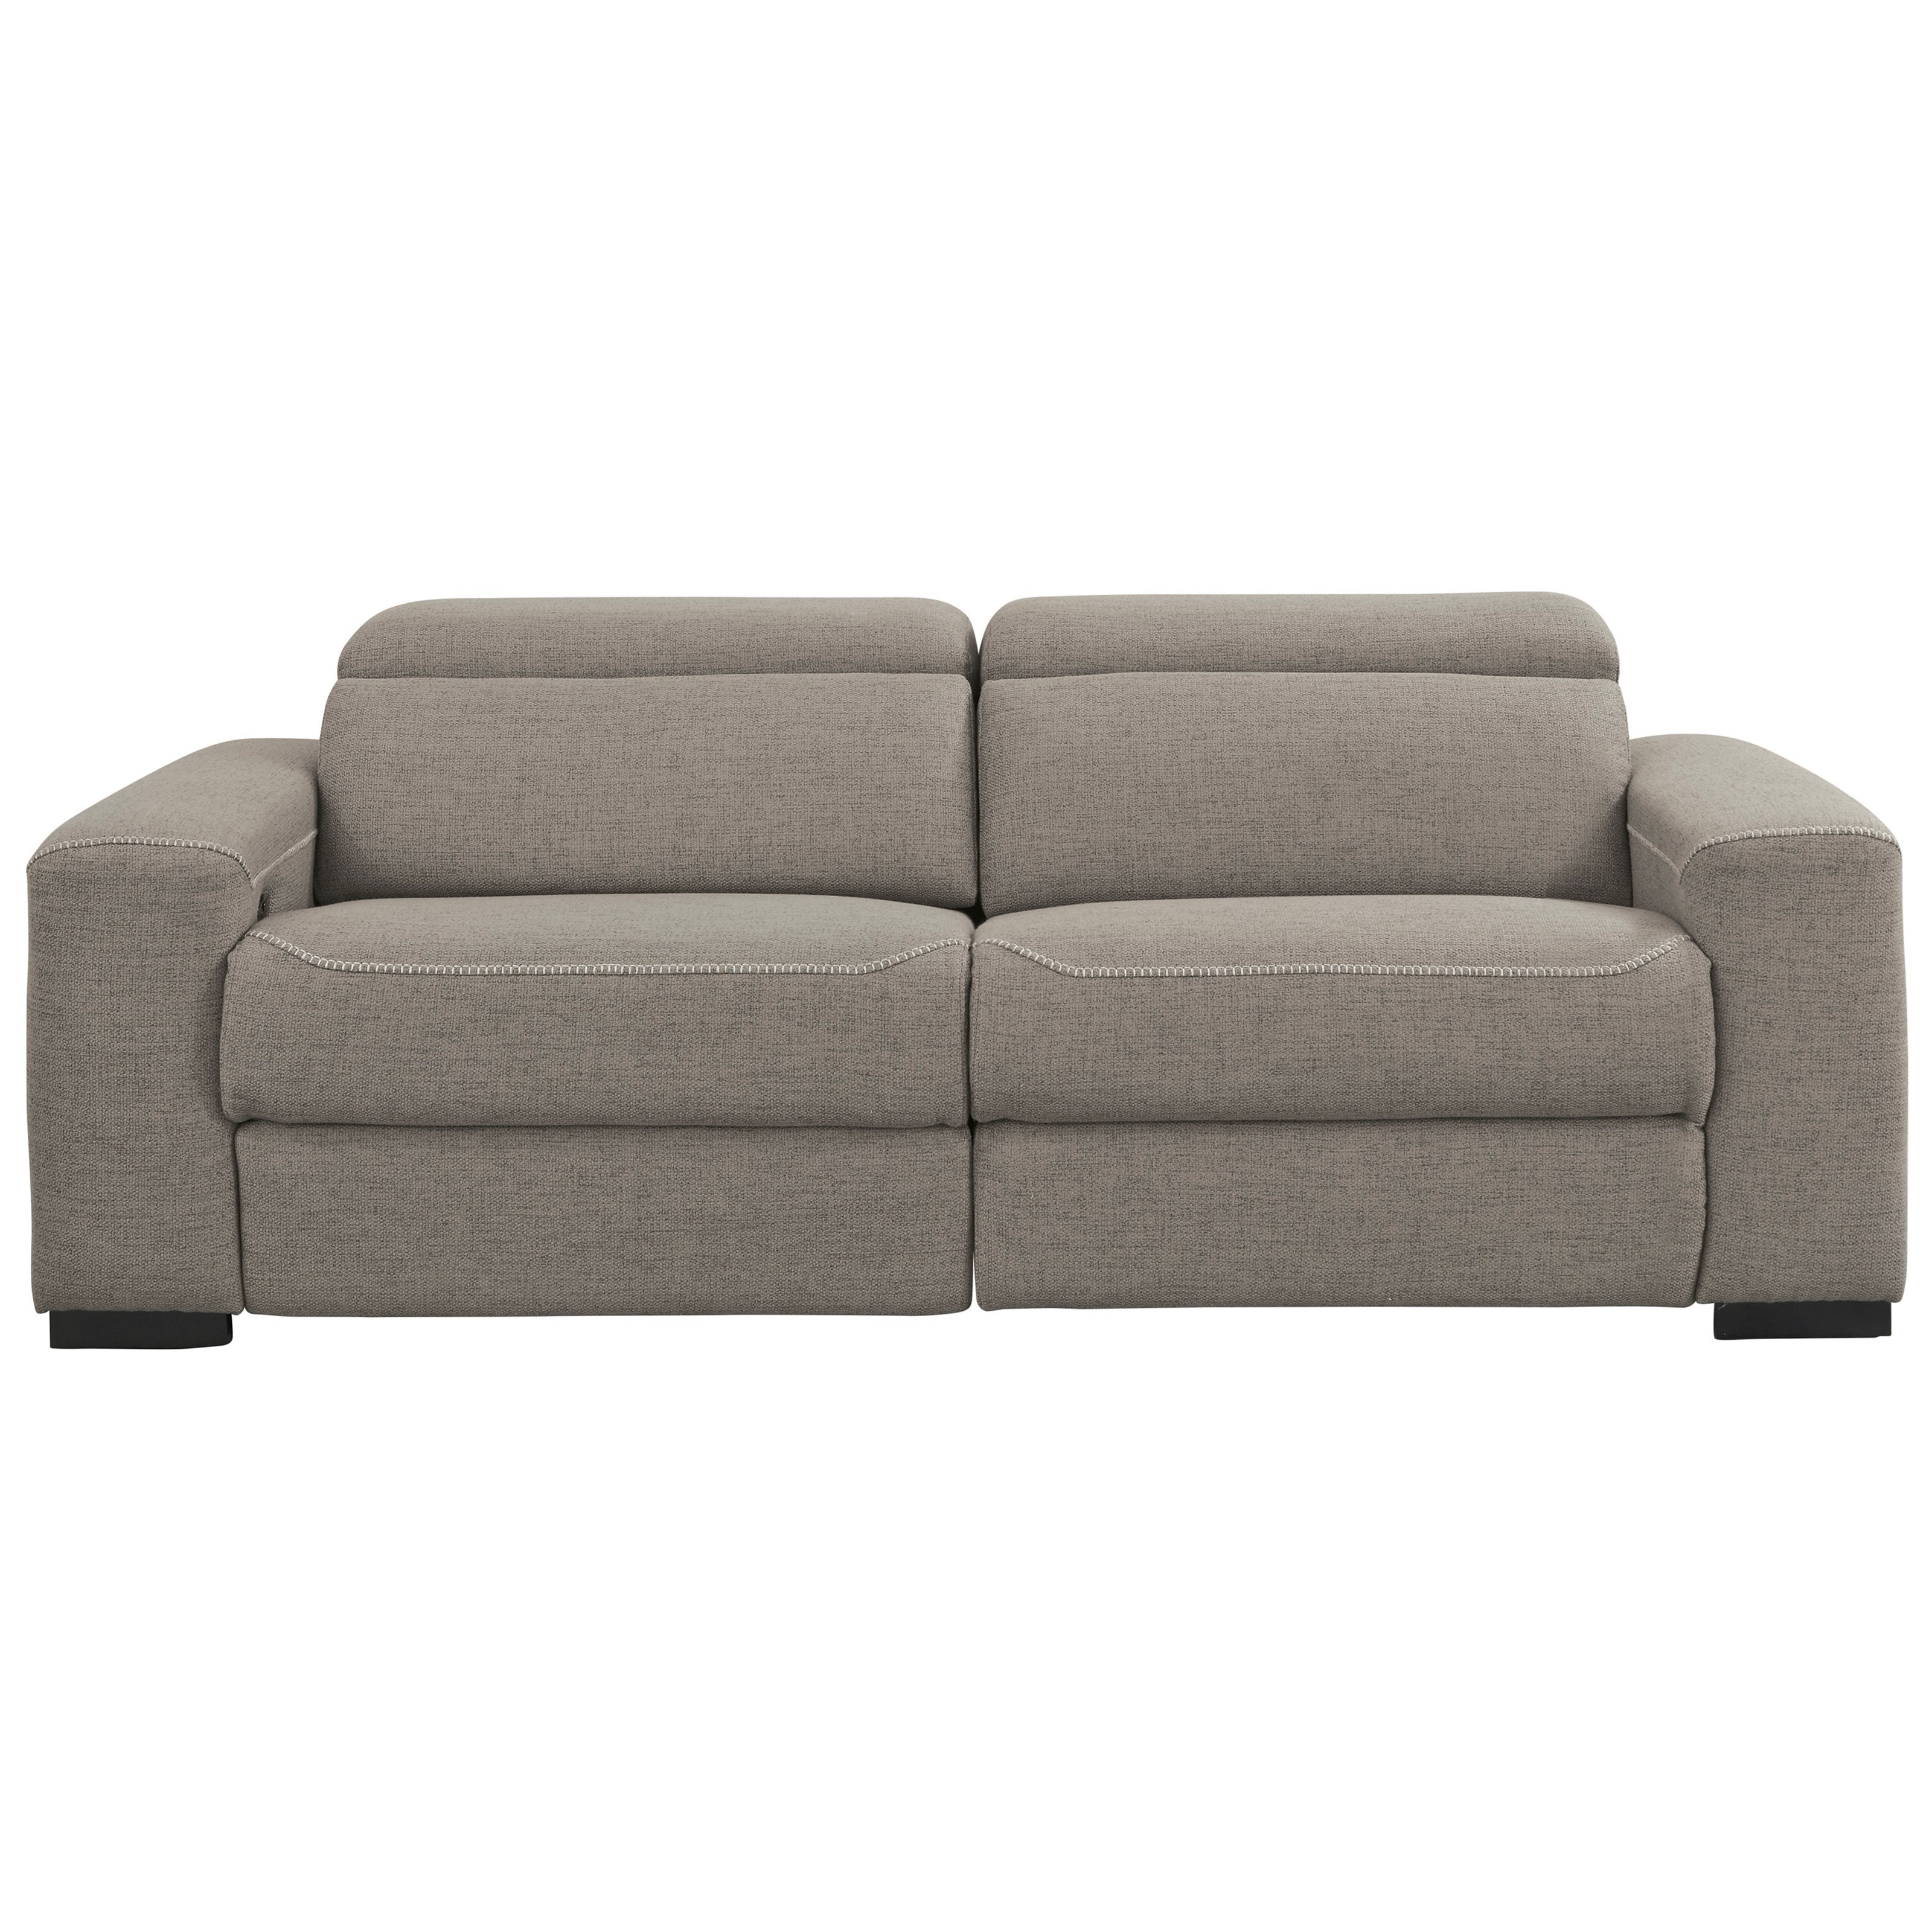 Mabton Power Reclining Loveseat by Signature Design by Ashley at HomeWorld Furniture